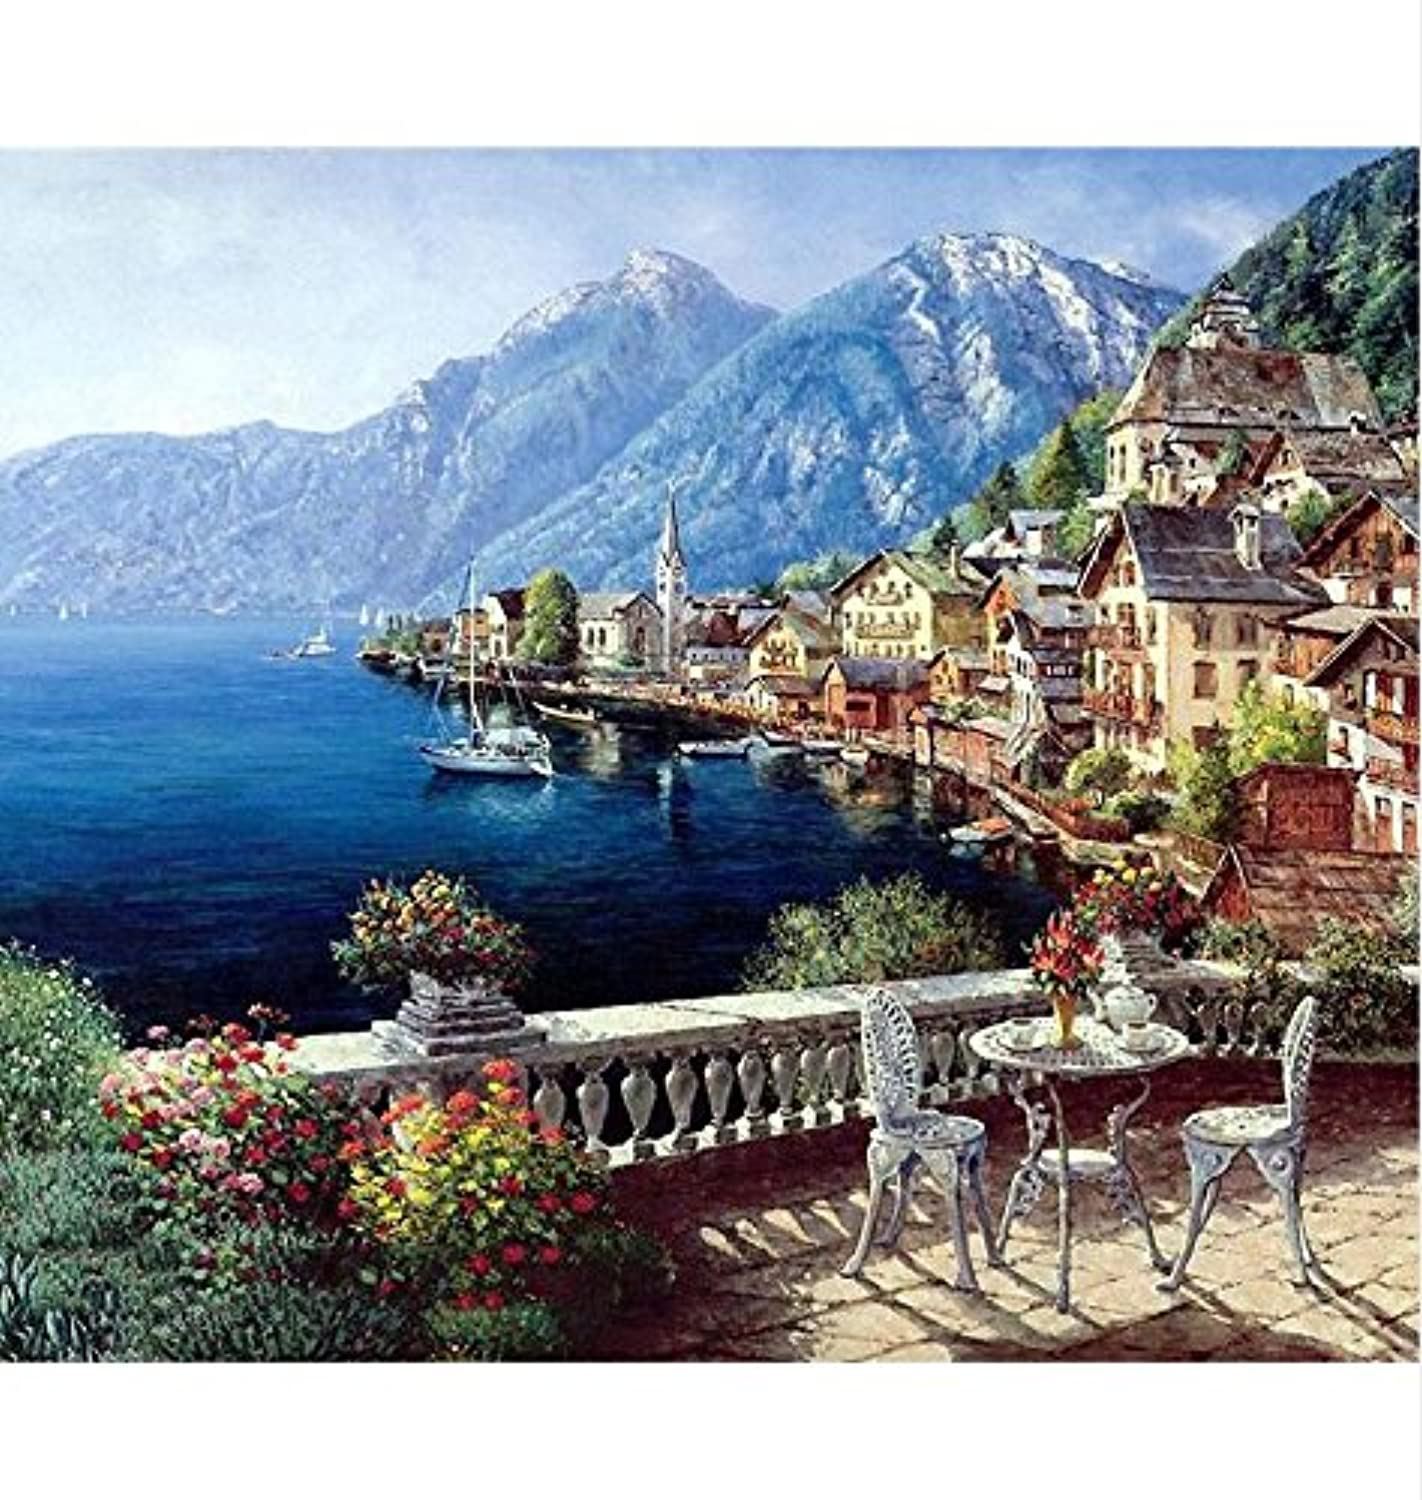 Paint by Number Kit,Diy Oil Painting Drawing Harbor Village Canvas with Brushes Decor Decorations Gifts - 16x20 inch with Frame